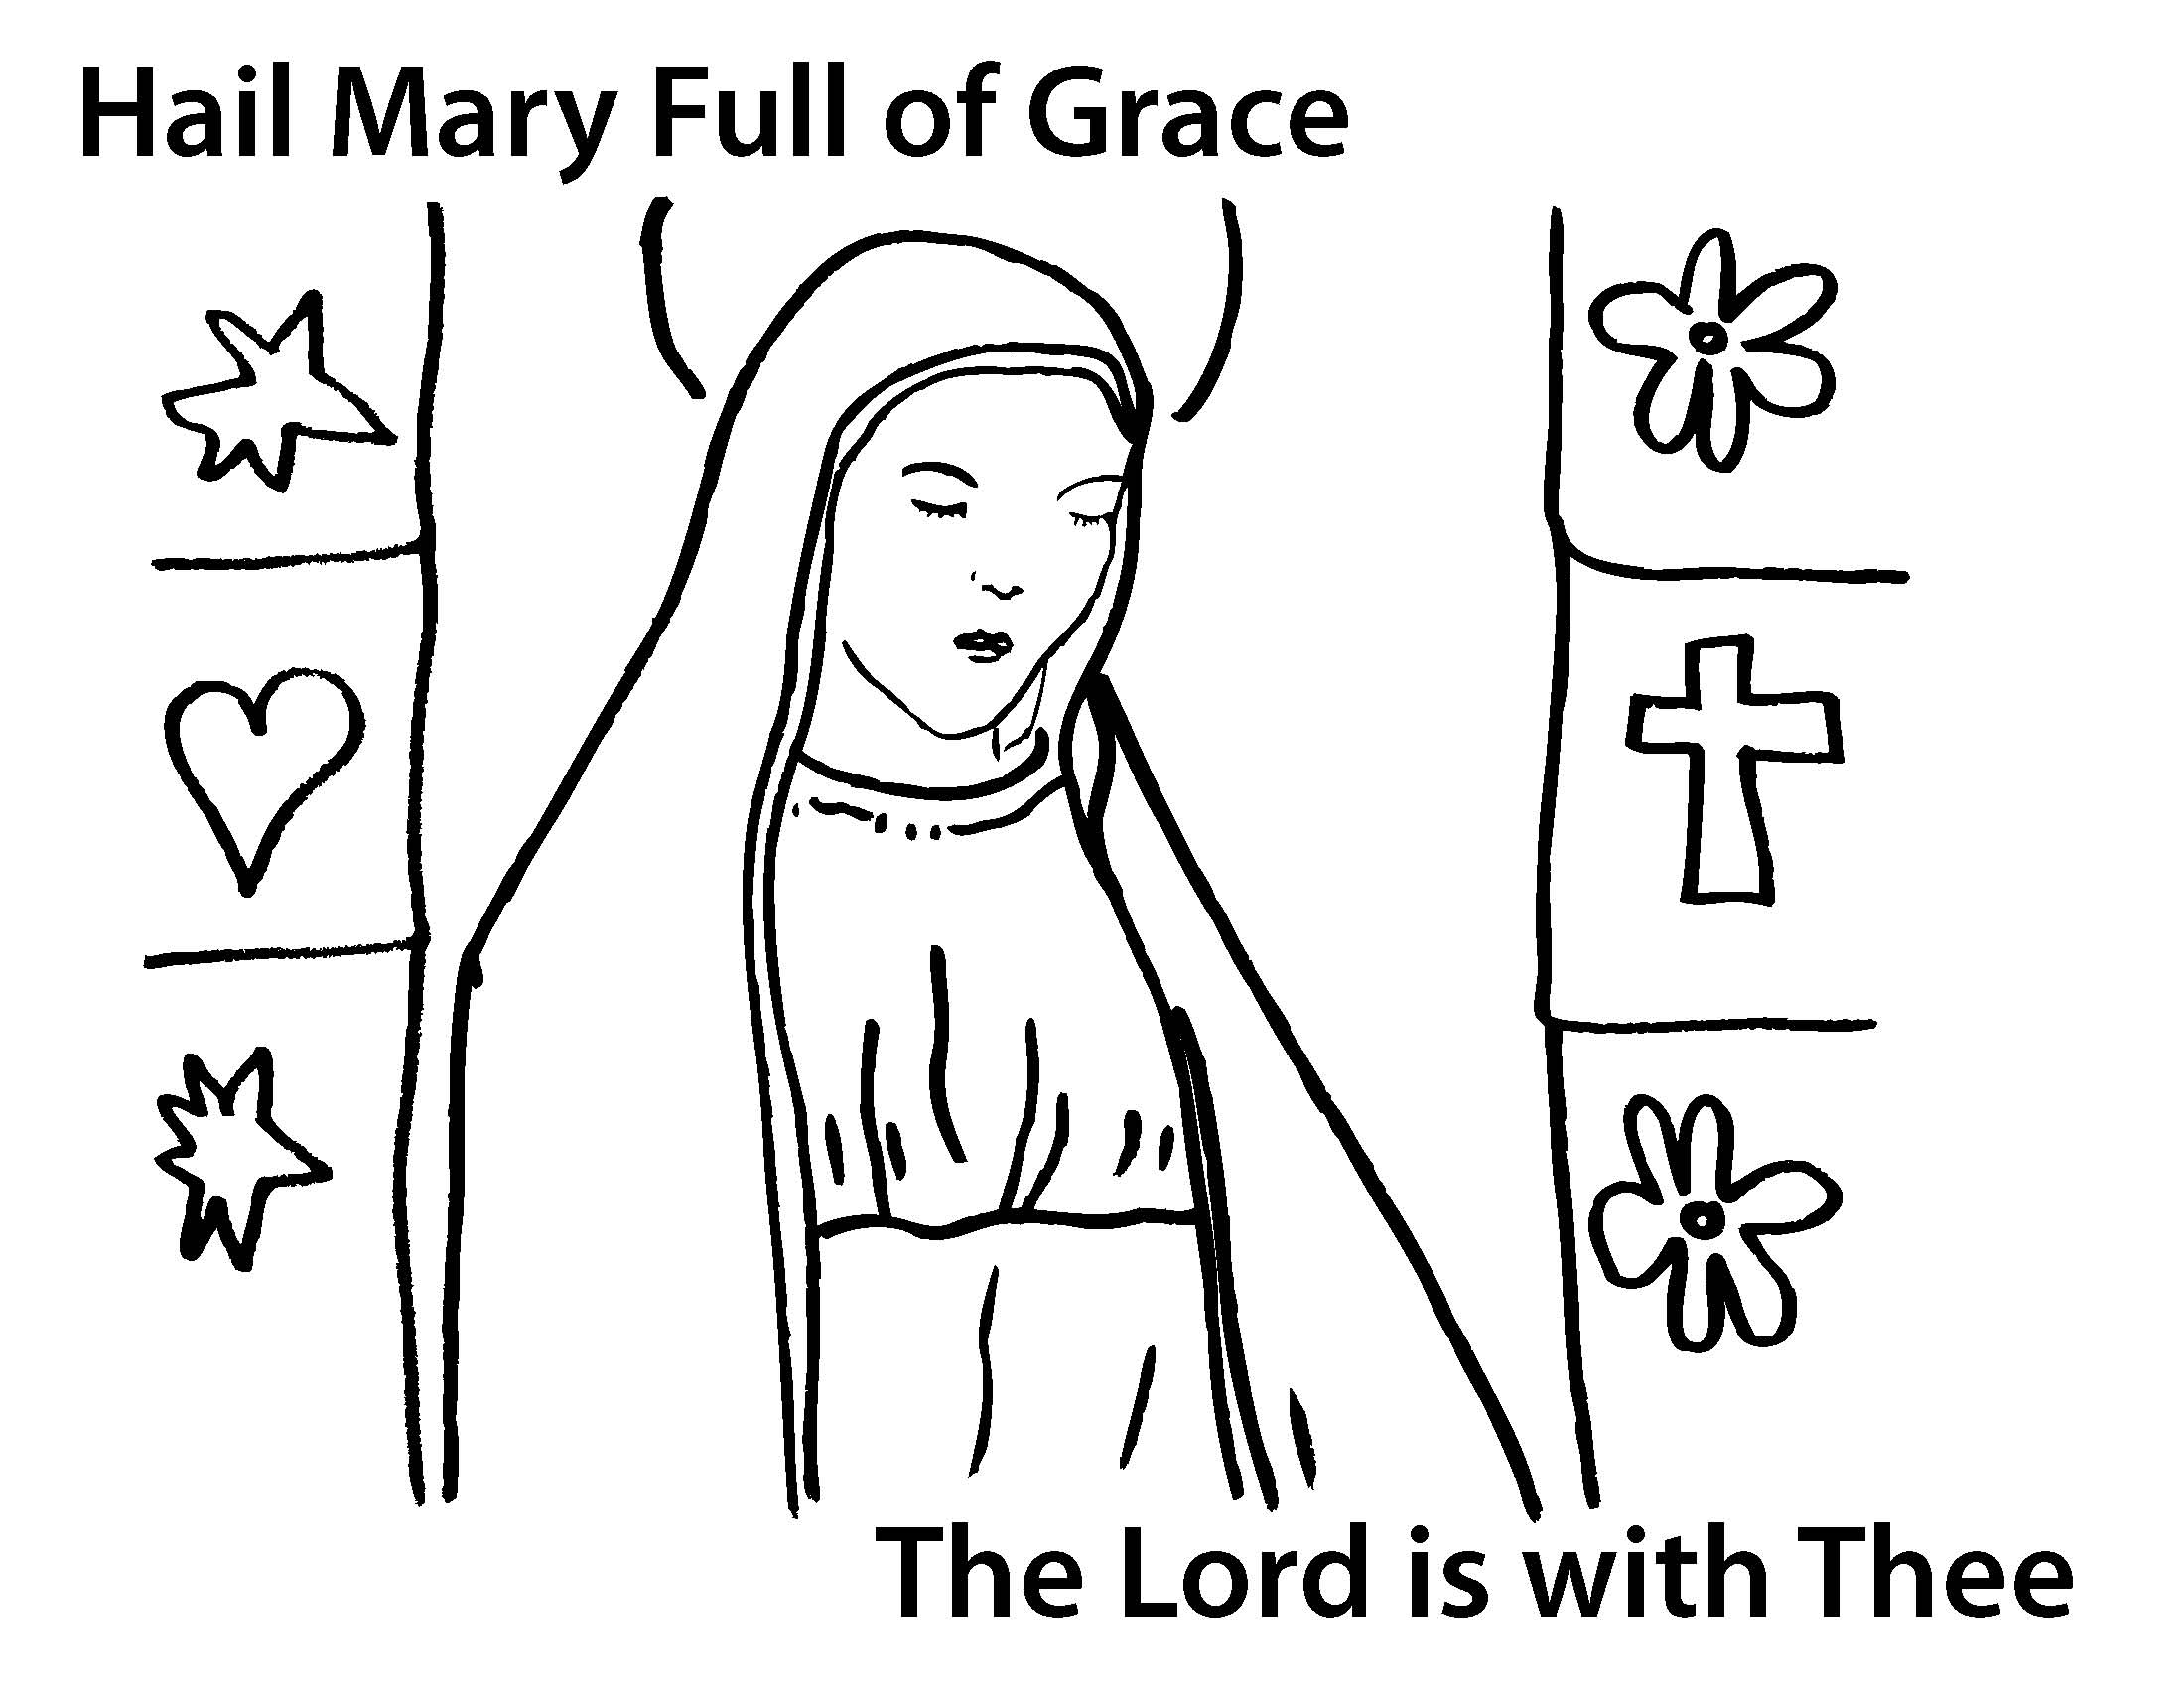 Mother Mary Coloring Page Drawing Free Image